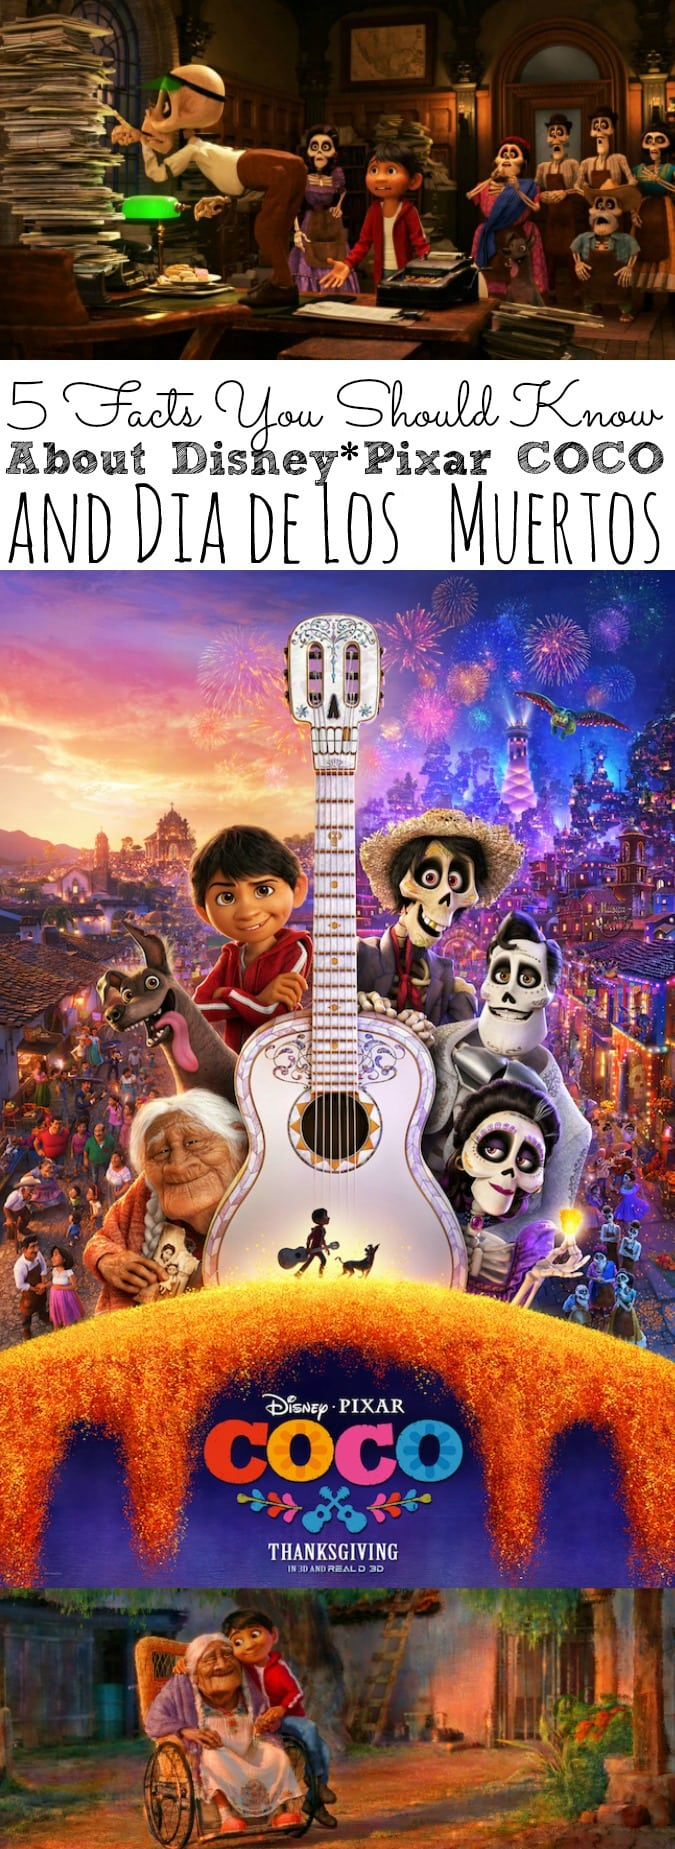 5 Facts You Should Know About COCO and Dia De Los Muertos - simplytodaylife.com